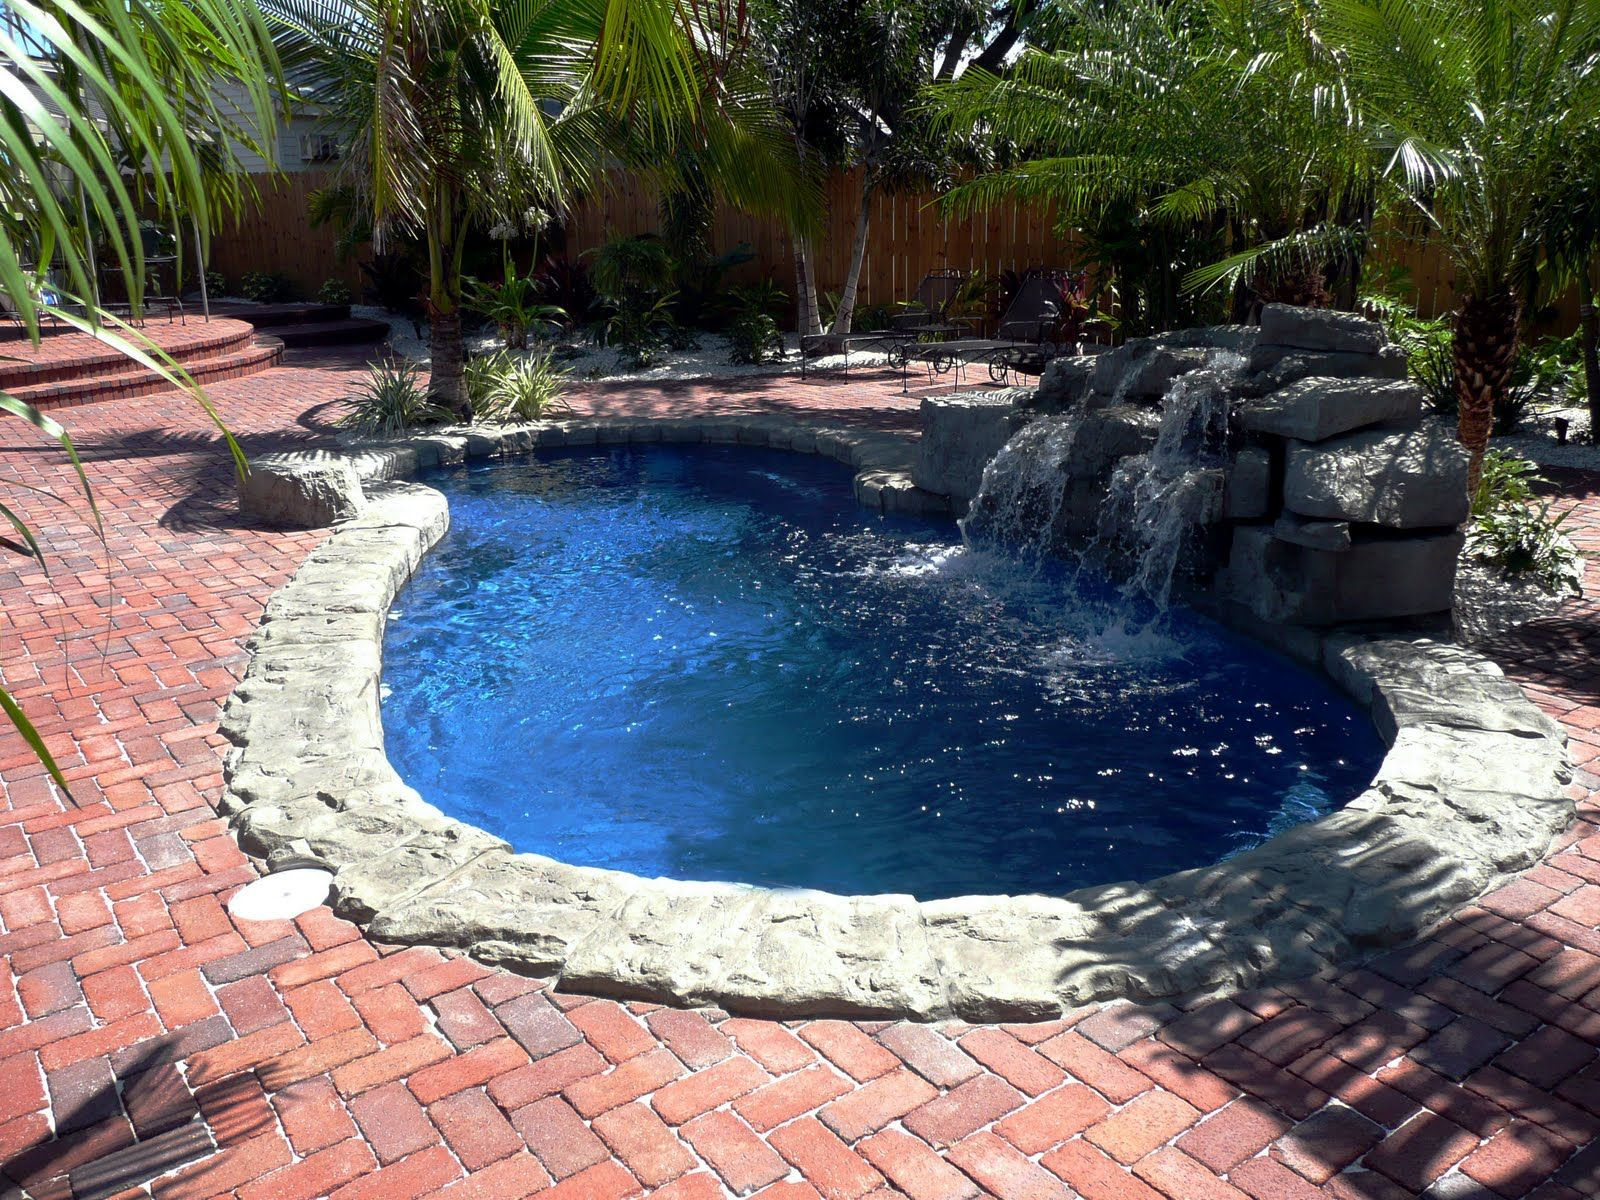 Small Pool Designs Prices raised in ground pools pool to the masses at an affordable price the islander pool Swiming Pools Water Fall With Rock Wall Also Tile Texture And Small Backyard Besides Low Price